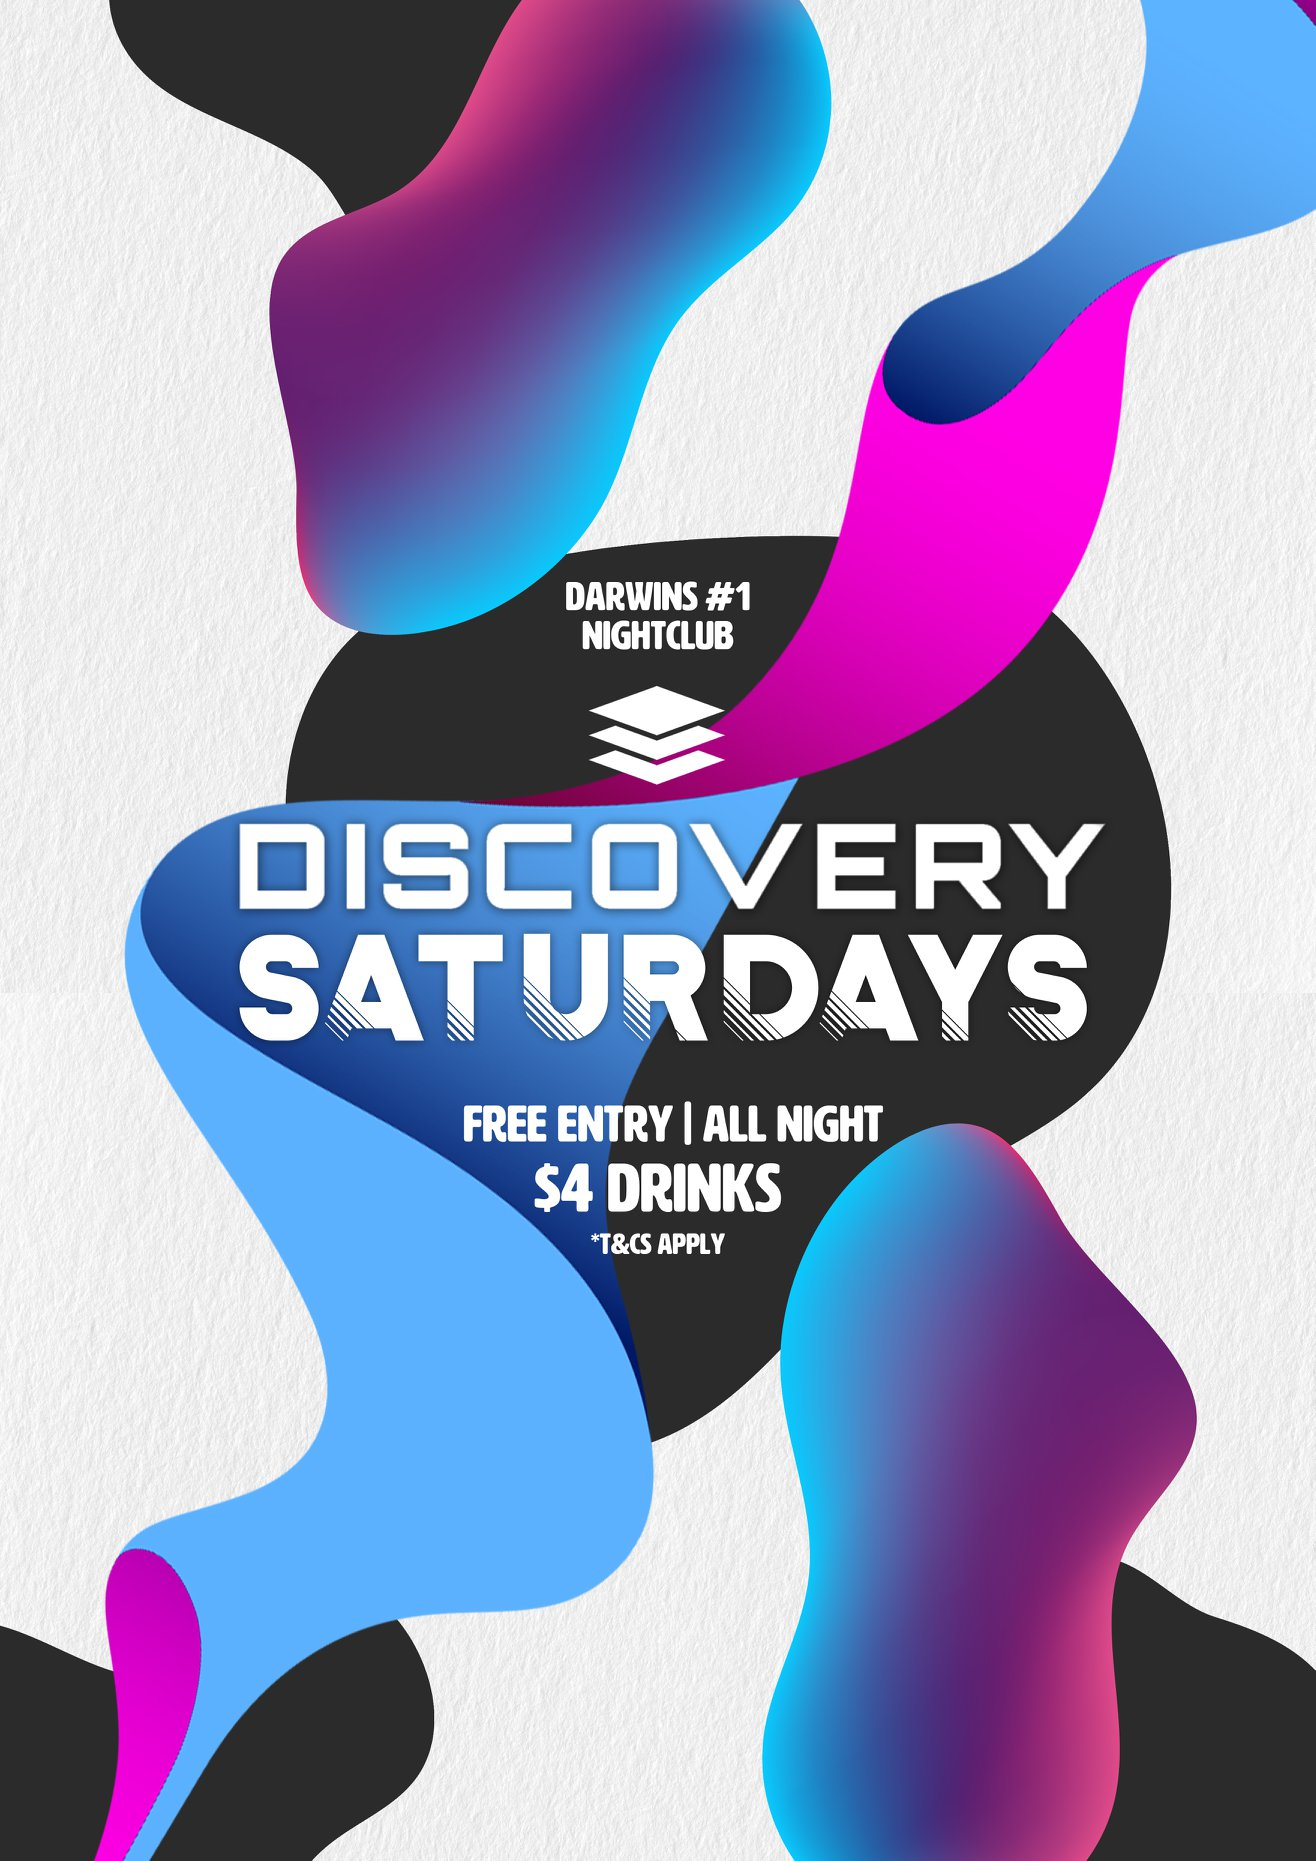 Discovery Saturdays - $4 Drinks and Free Entry